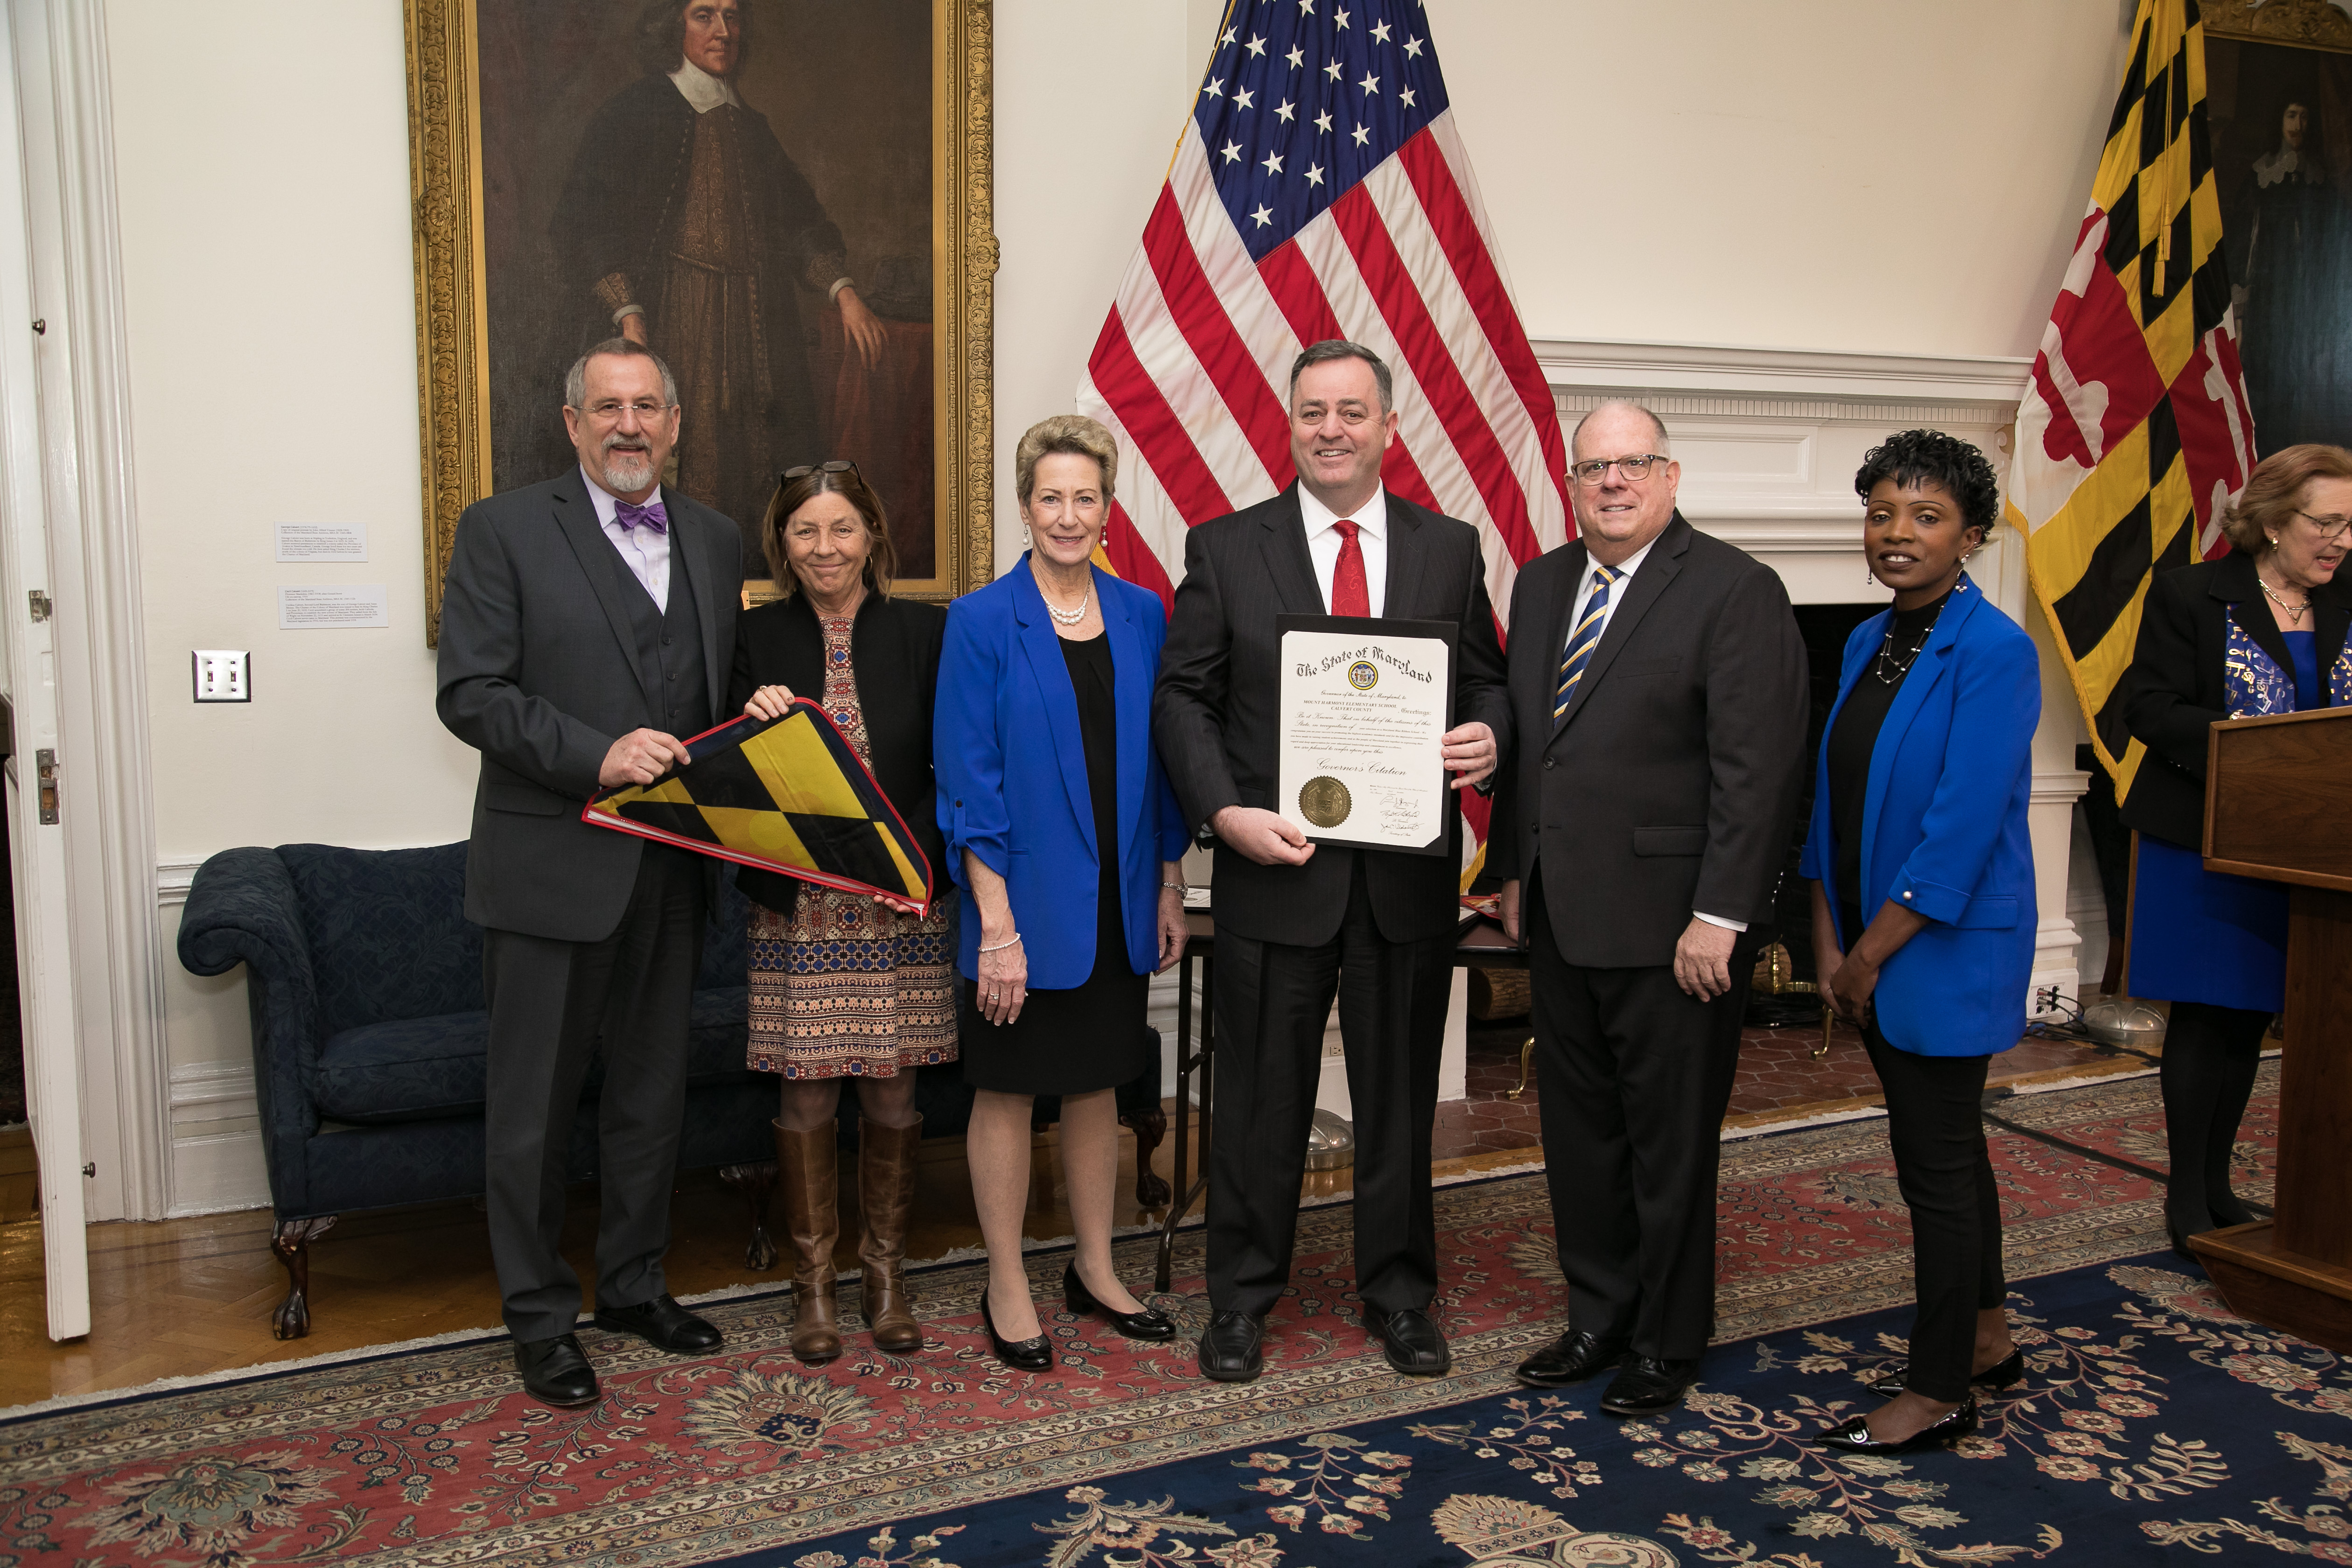 Maryland Governor Larry Hogan, State Superintendent of Schools Dr. Karen B. Salmon with 3 representatives from Mount Harmony Elementary School holding a certificate and a Maryland flag.